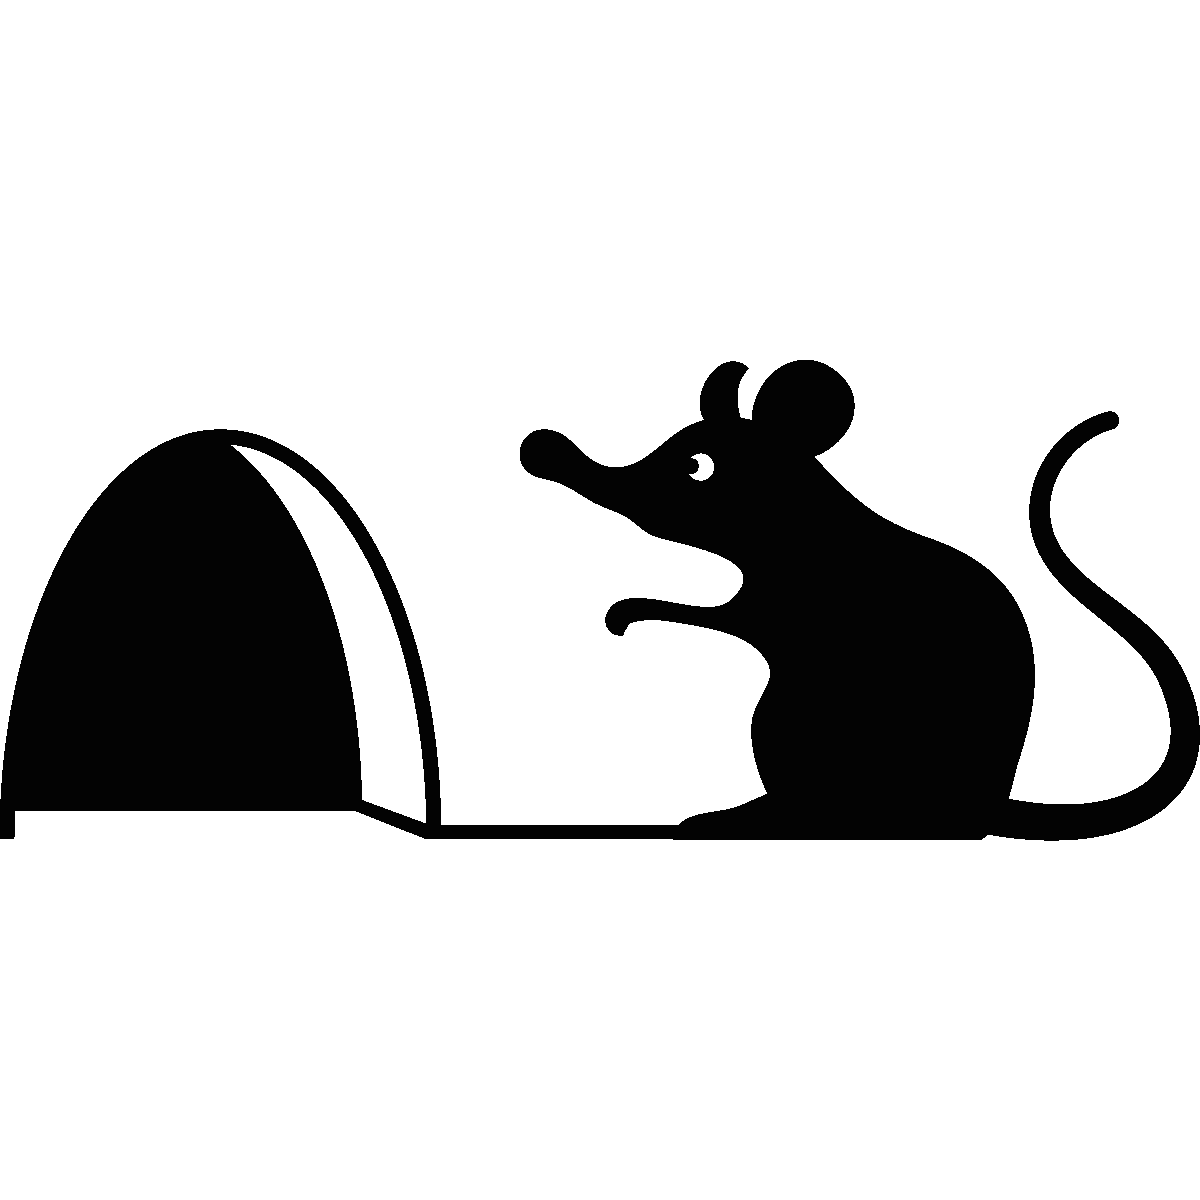 Cat chasing mouse clipart clip art free http://www.ambiance-sticker.com/en/wall-sticker-for-light-switch-cute ... clip art free